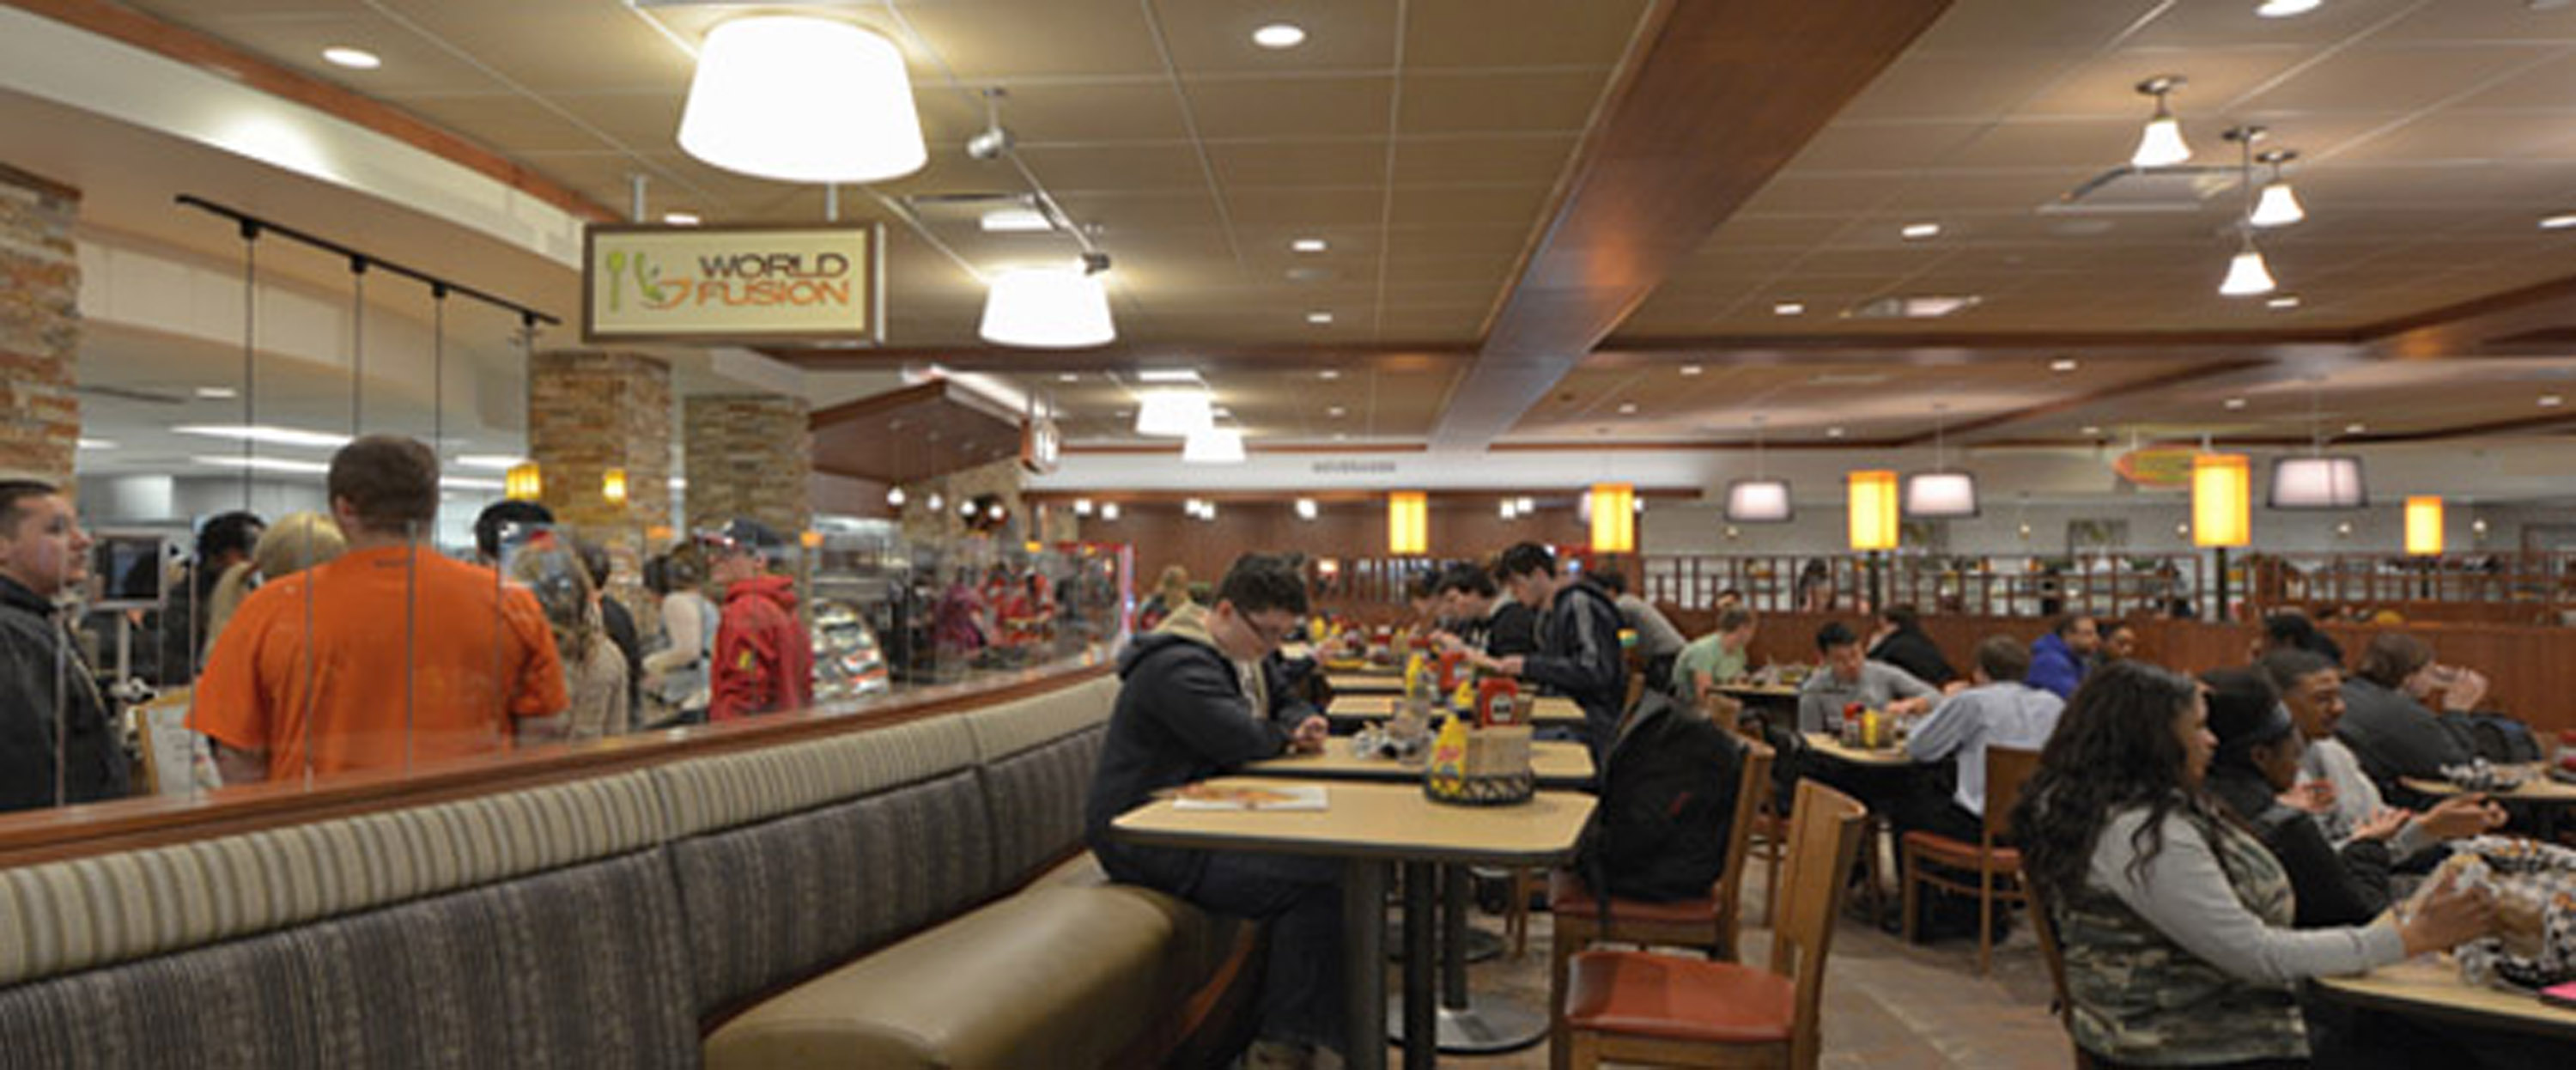 Top 4 Considerations when Choosing MEP Design Engineering Services for Dining Facilities